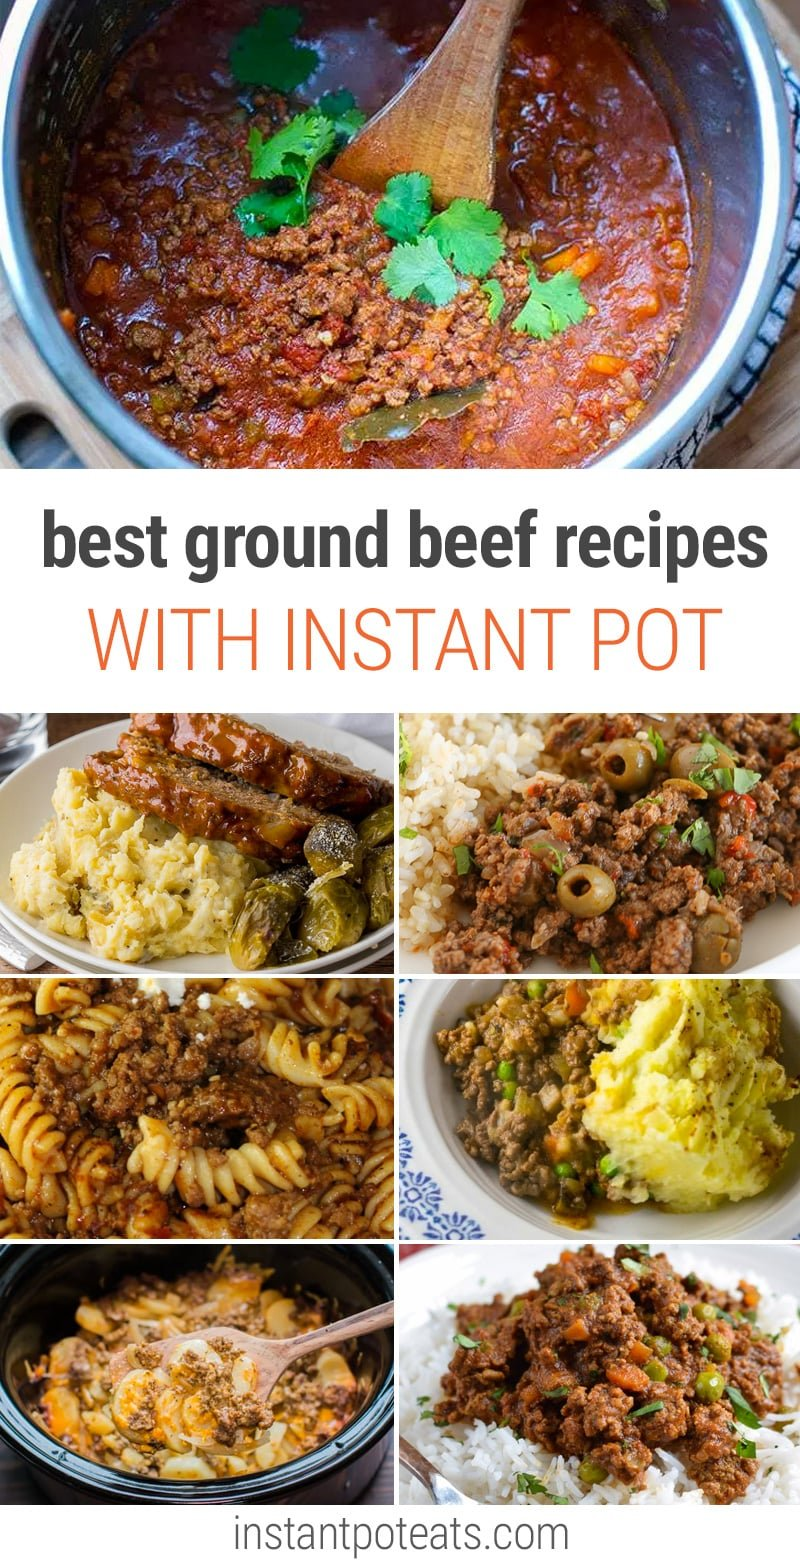 The BEST Instant Pot Ground Beef Recipes (You Will Love